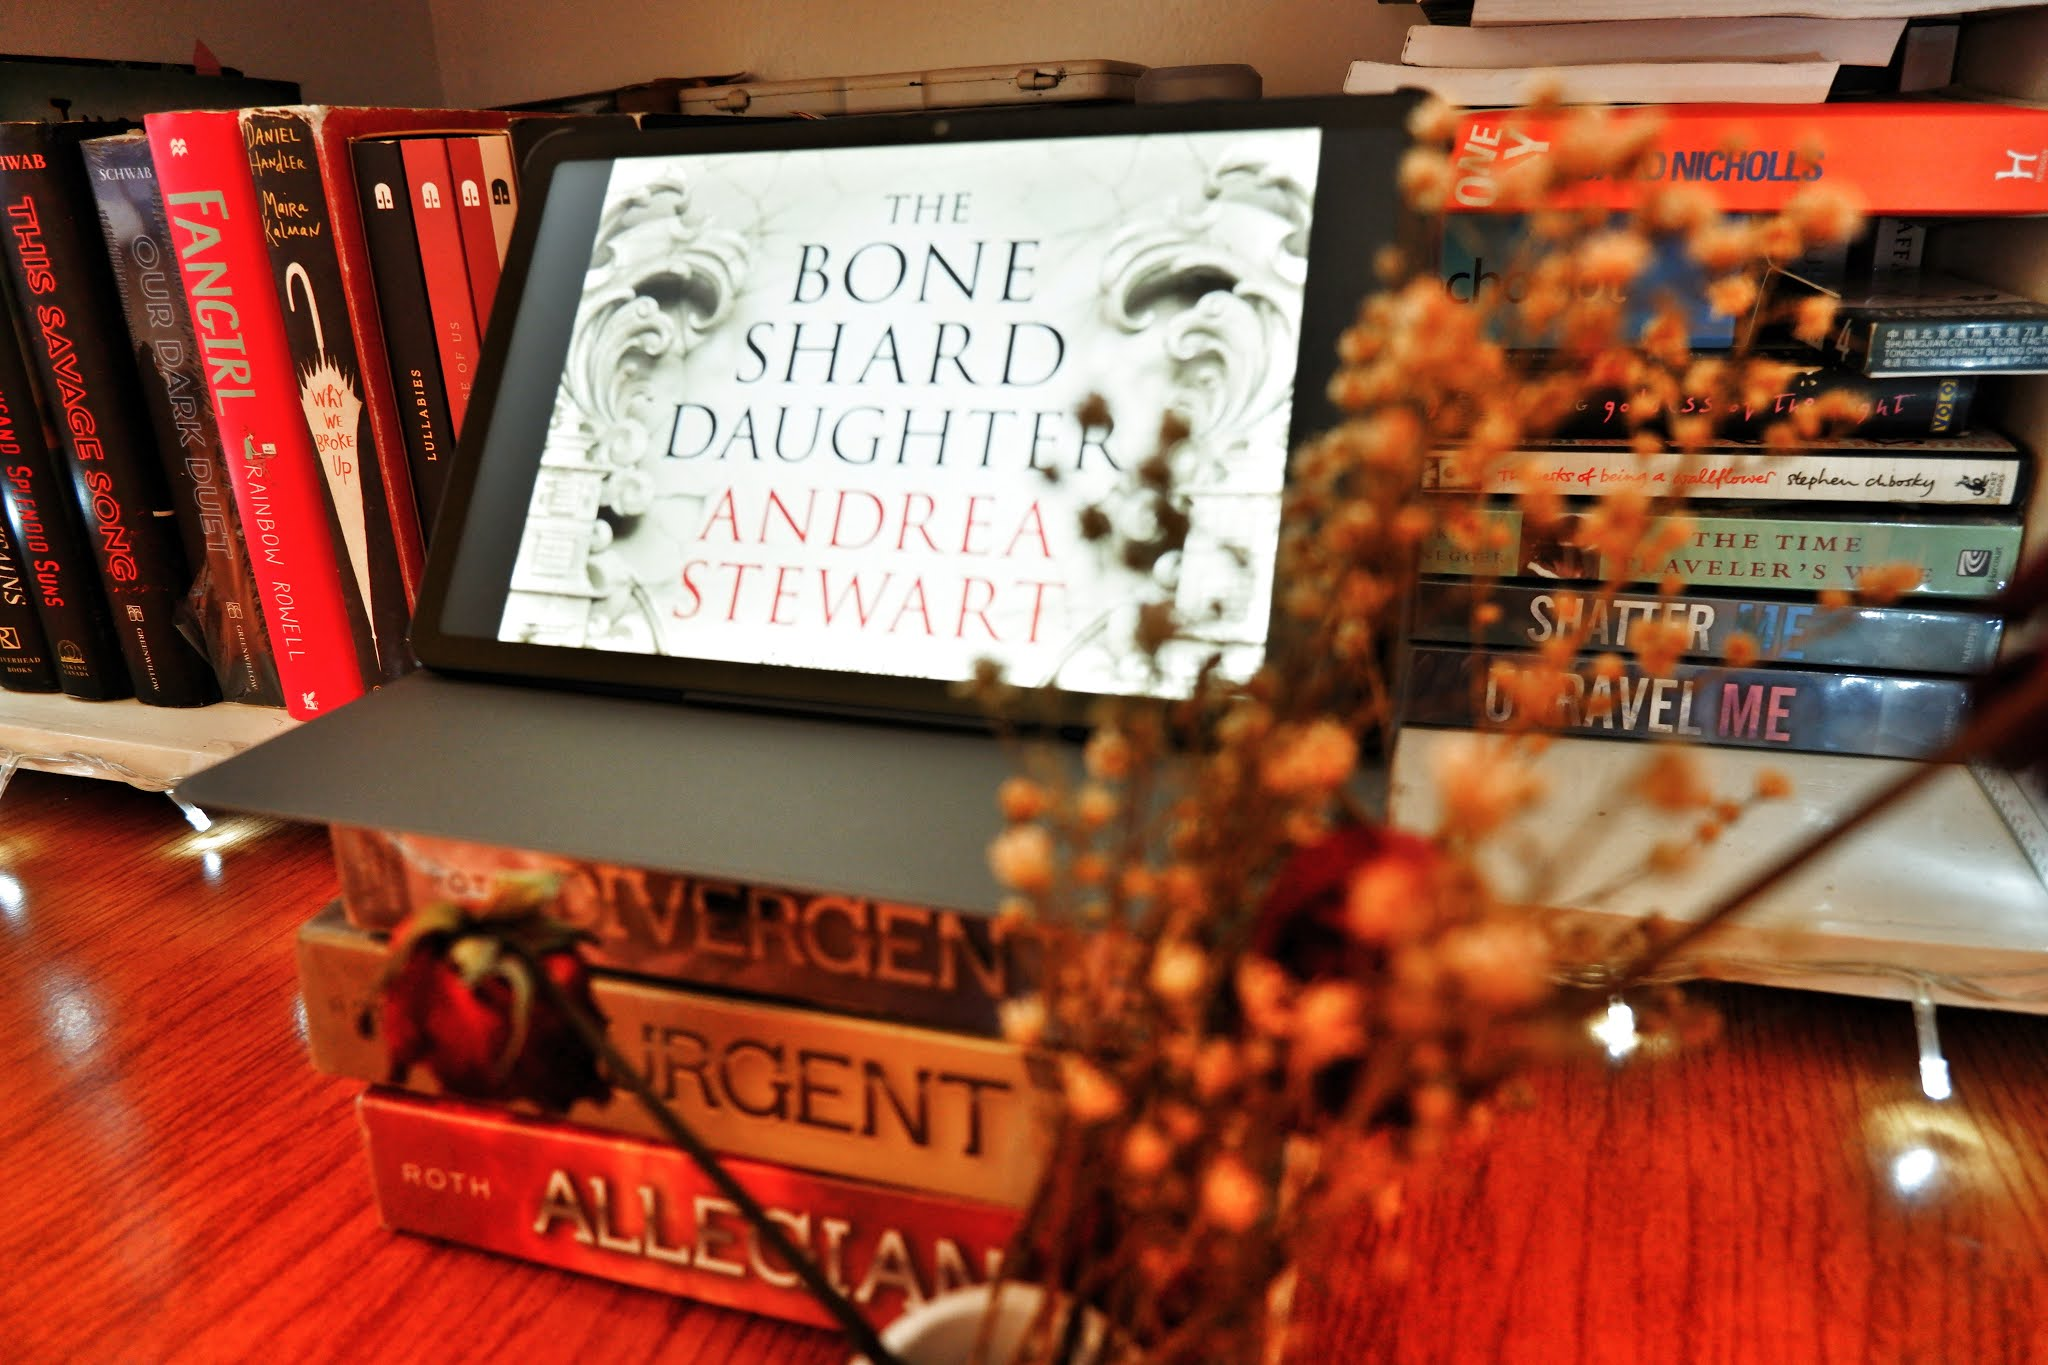 BLOG TOUR: the Bone Shard Daughter by Andrea Stewart